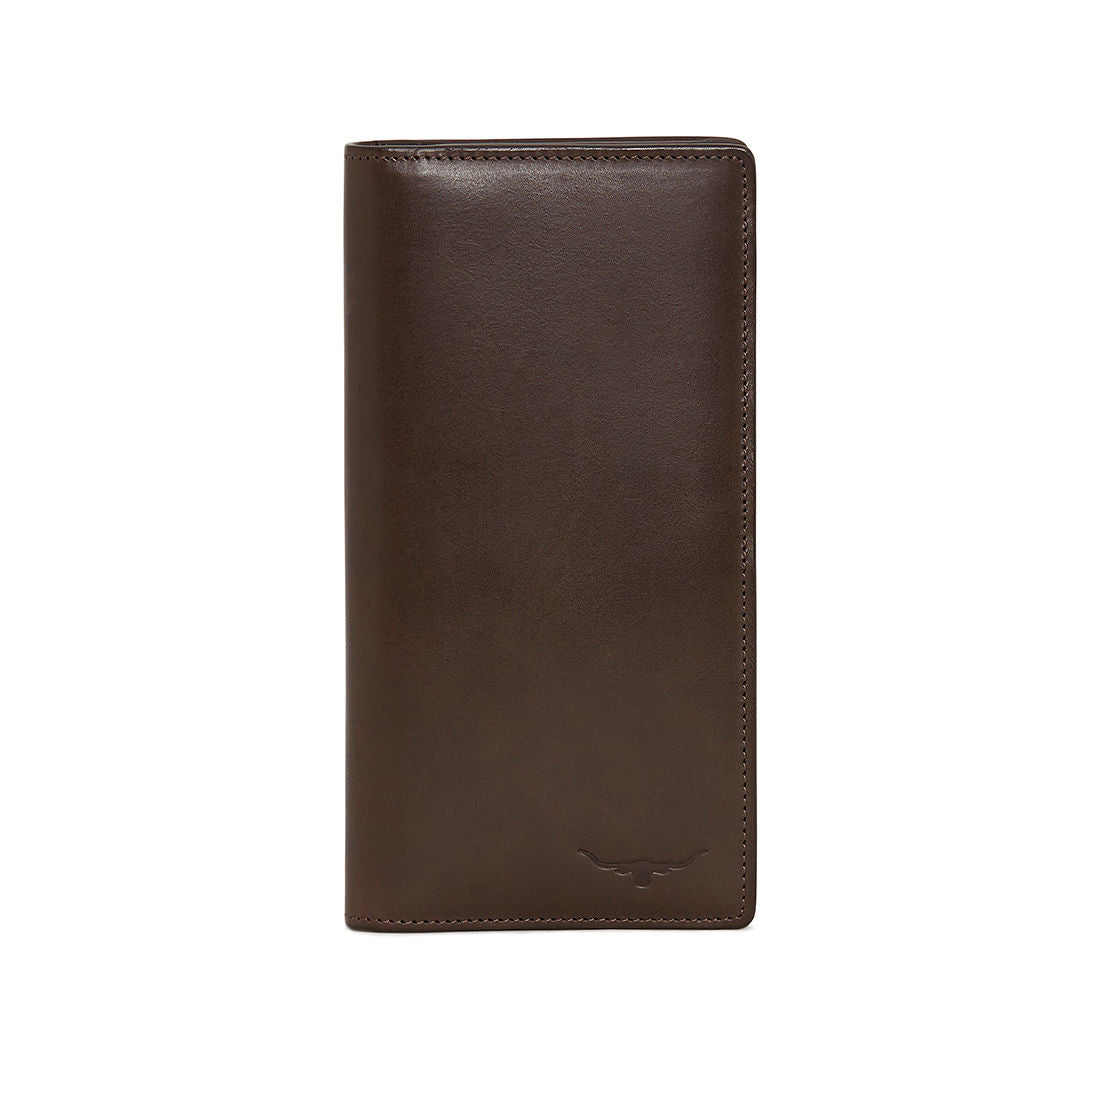 R.M.Williams City Coat Bi Fold Wallet Chestnut CLM9ECH410100